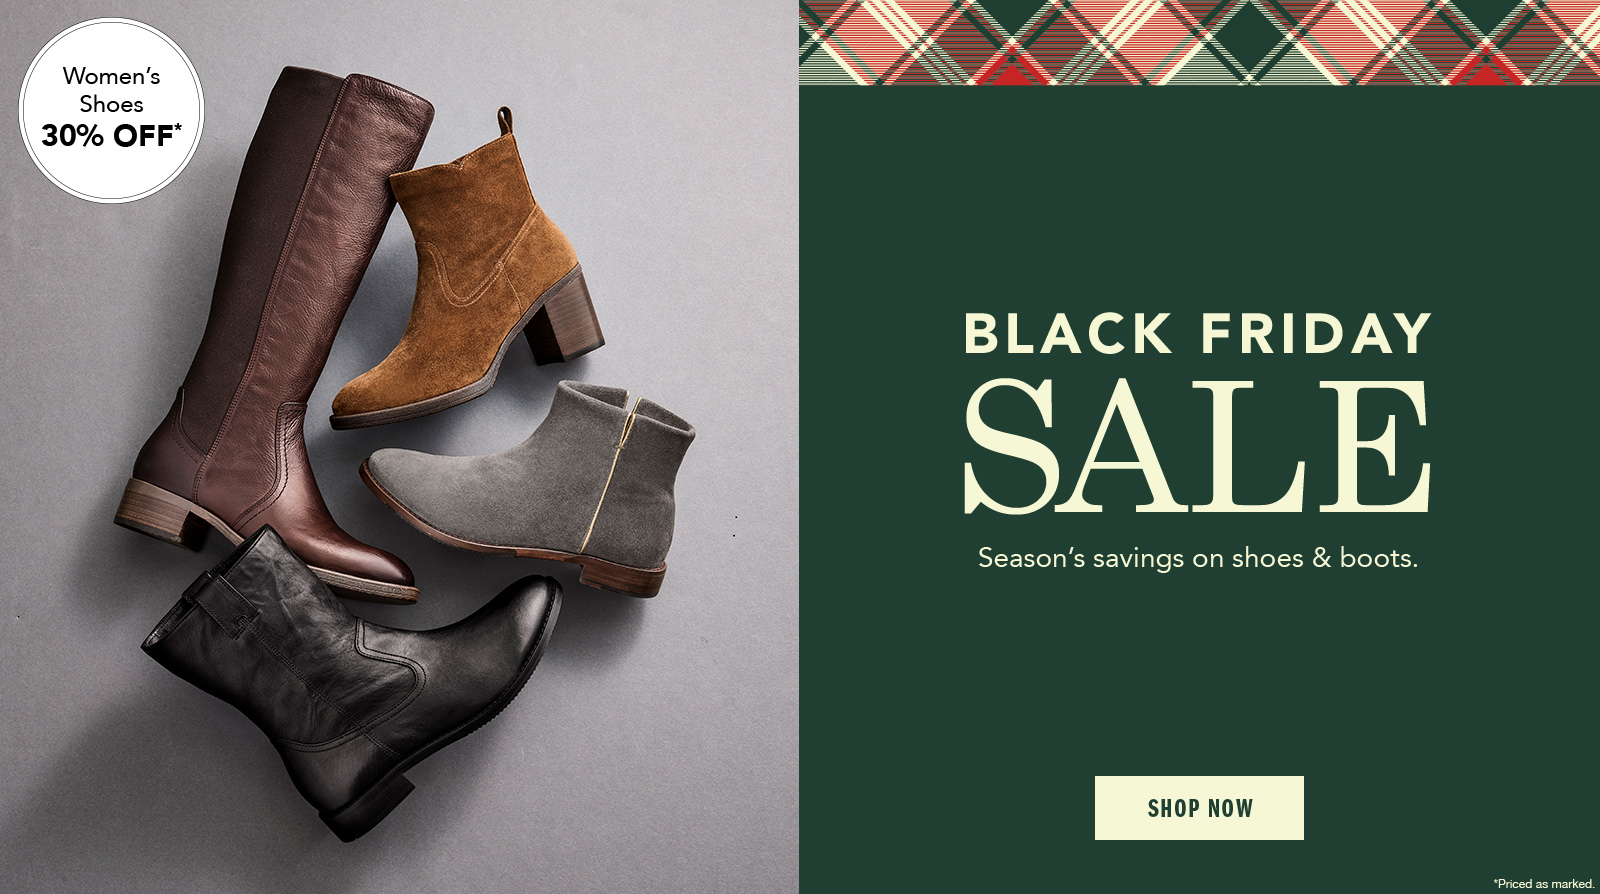 Black Friday Sale Women's Shoes 30% Off